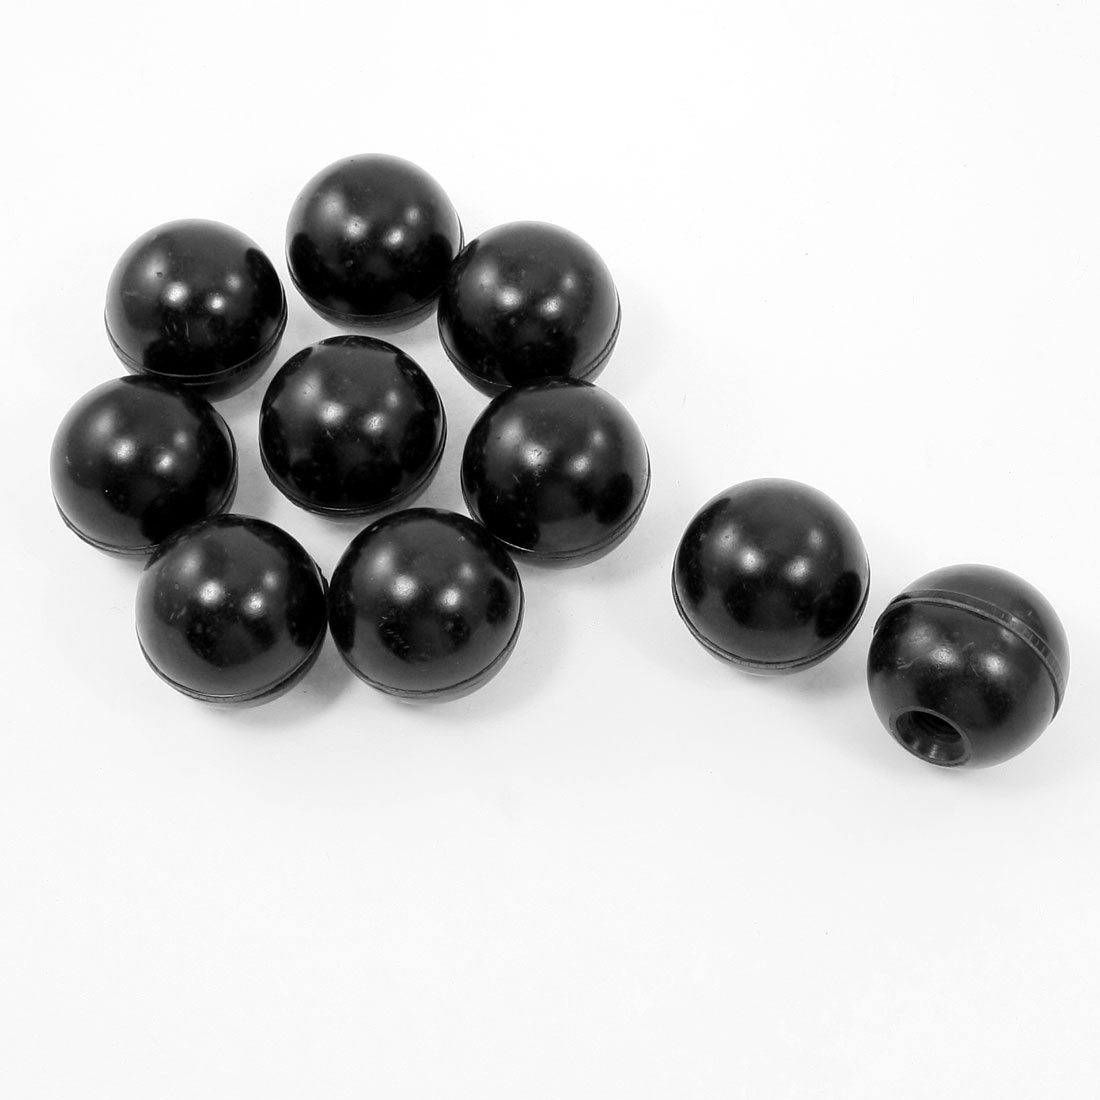 "0.5"" Dia Threaded Black Plastic Ball Knob Round Handle 10Pcs for Machine Tool"